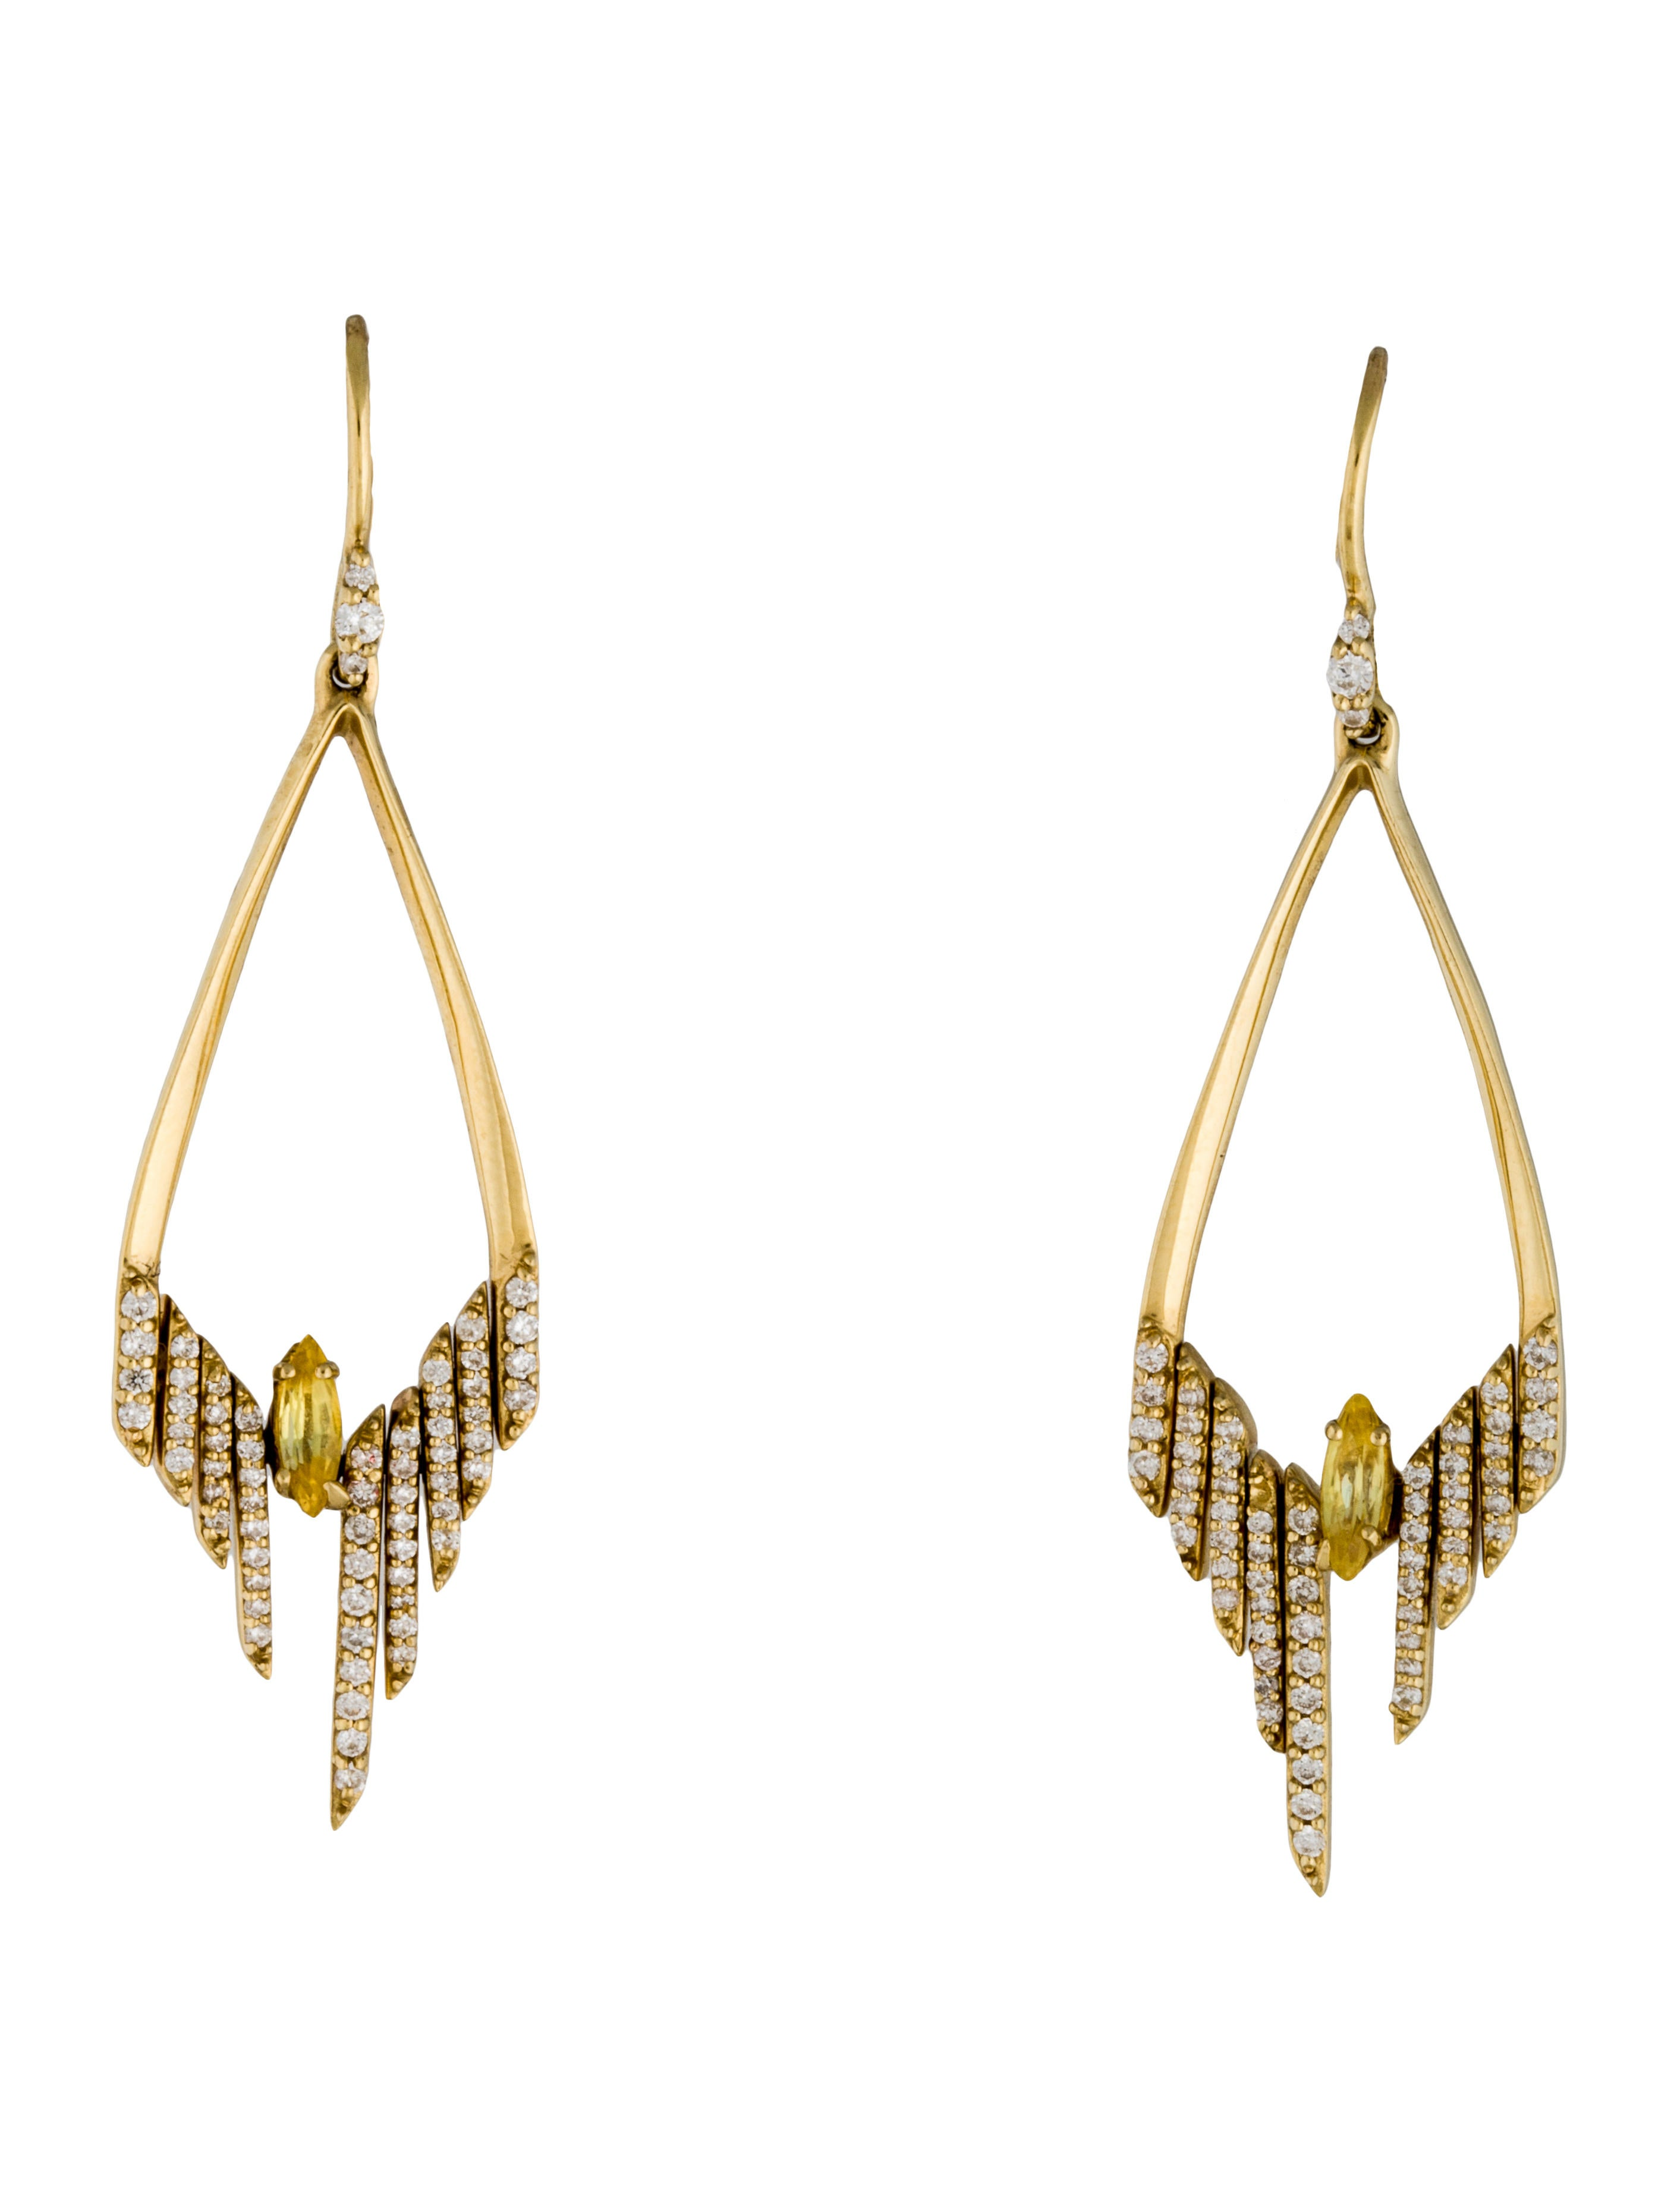 Alexis bittar fine jewelry golden ice diamond earrings for Fine jewelry diamond pendants